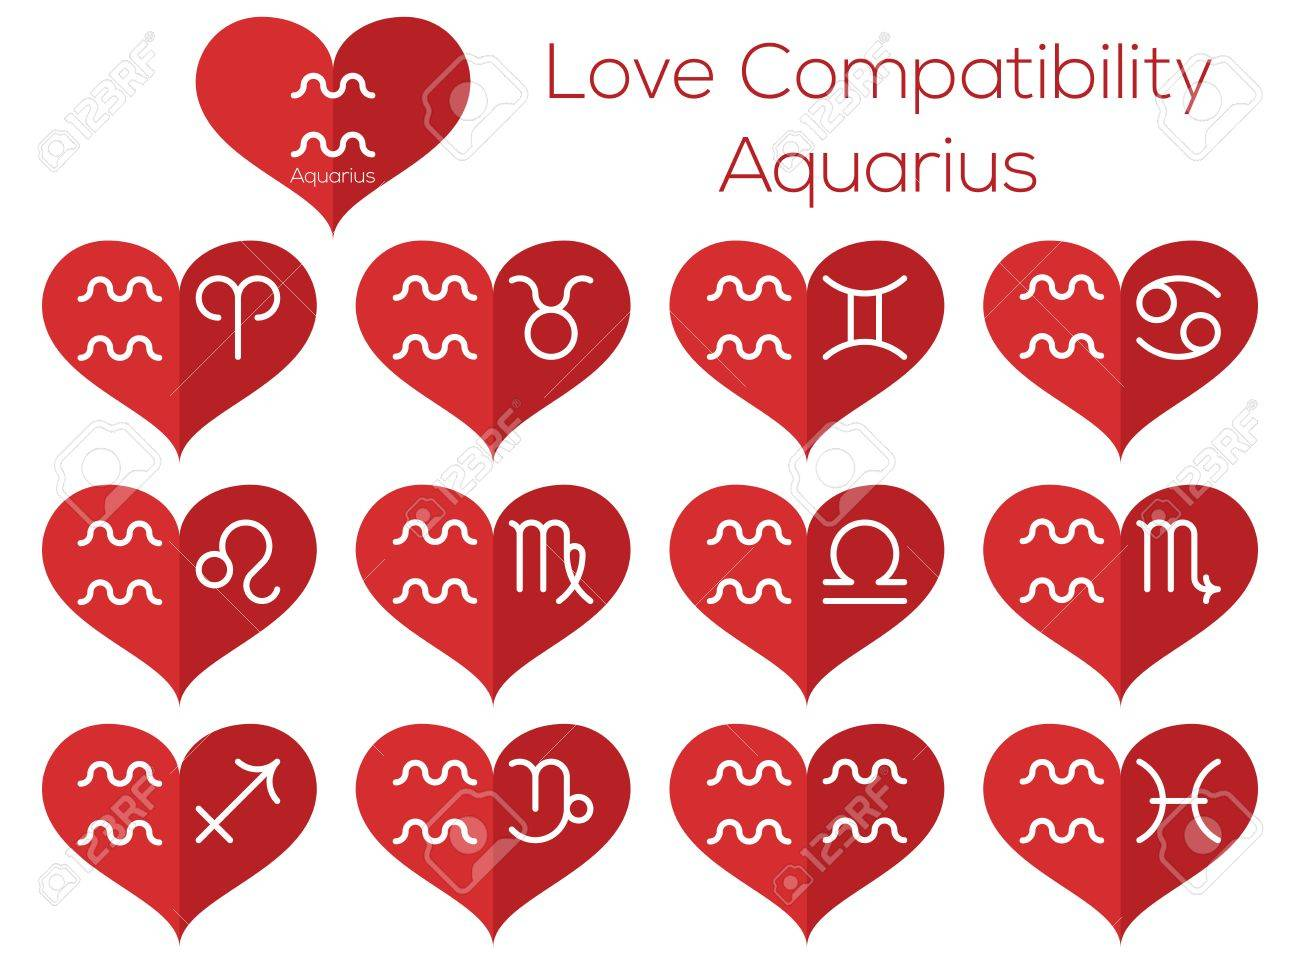 Love compatibility - Aquarius  Astrological signs of the zodiac